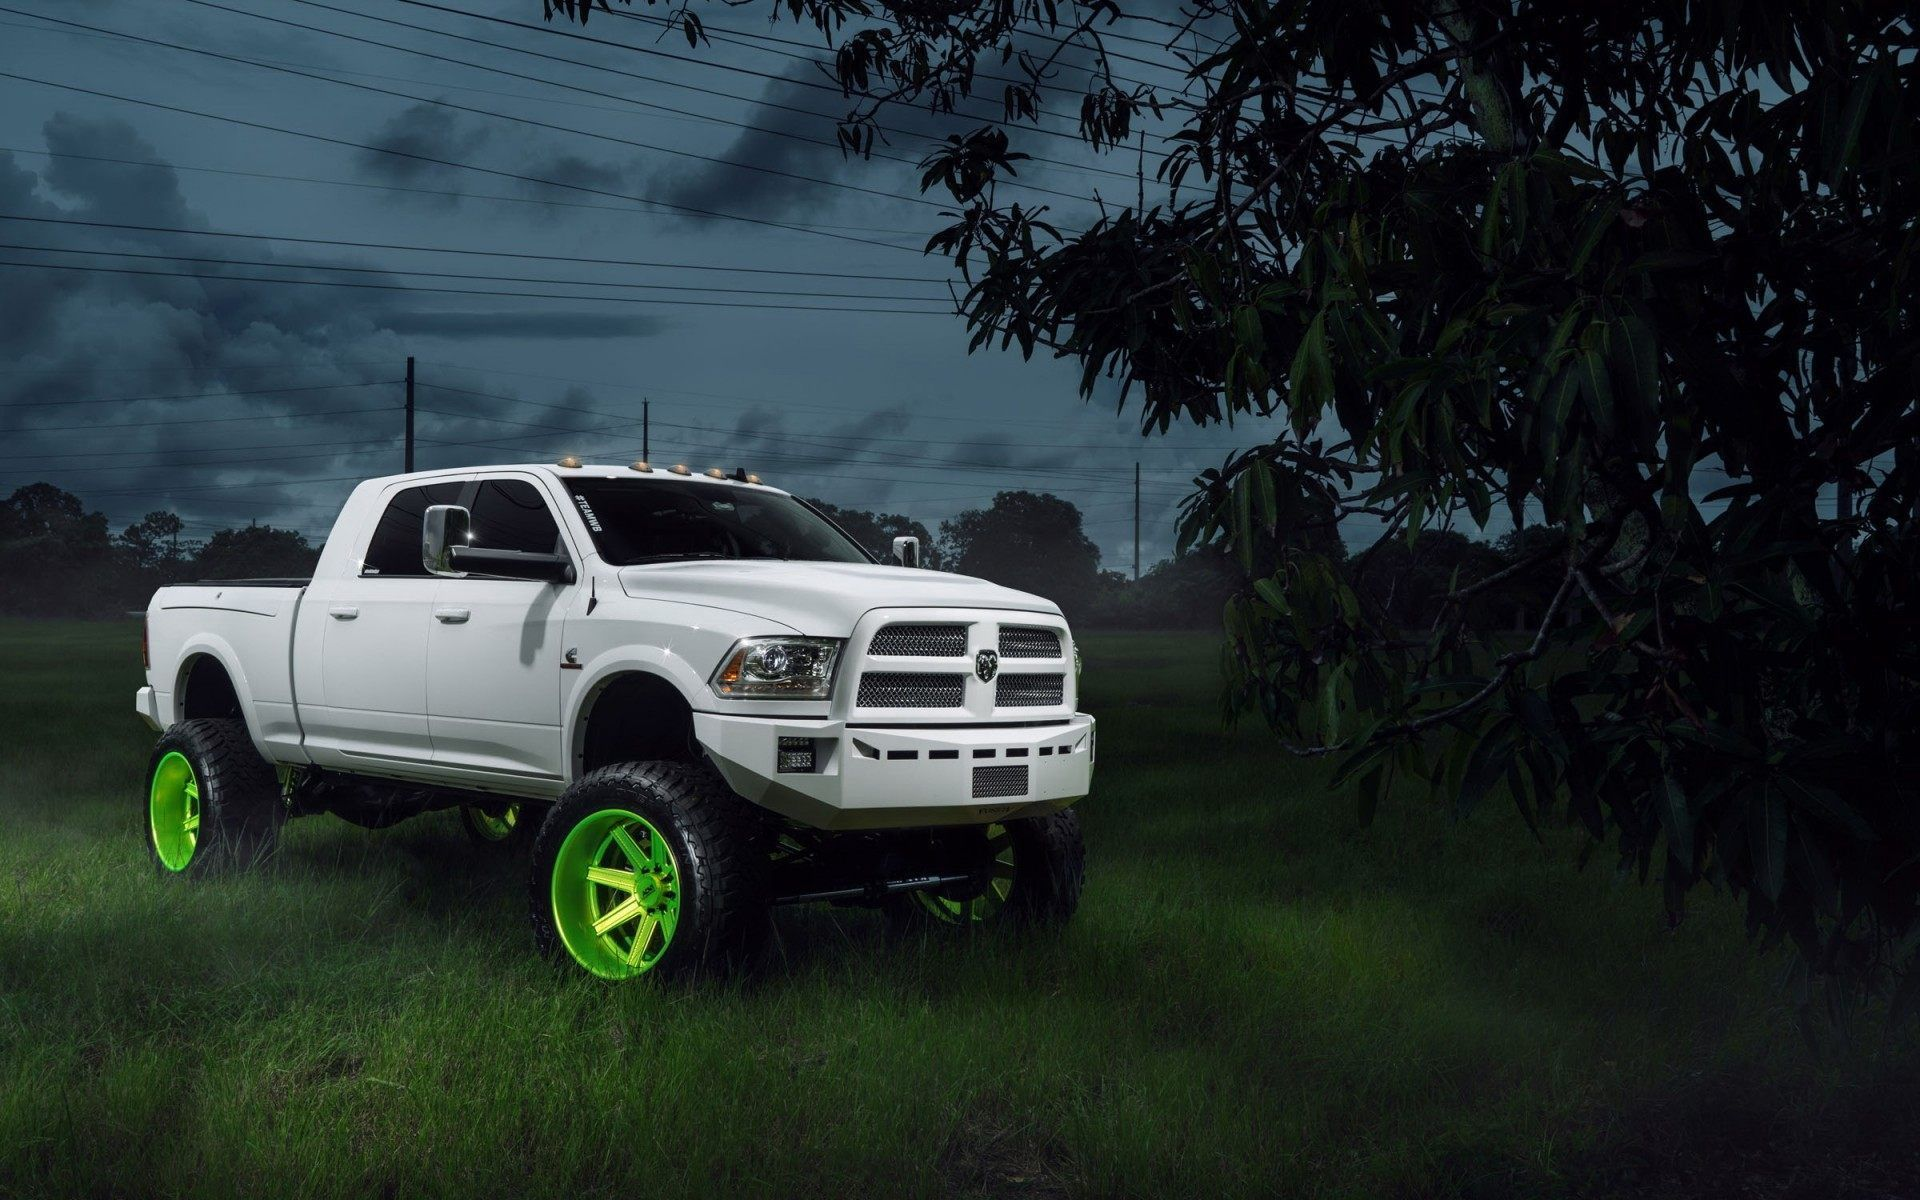 Dodge Truck Wallpapers Top Free Dodge Truck Backgrounds Wallpaperaccess